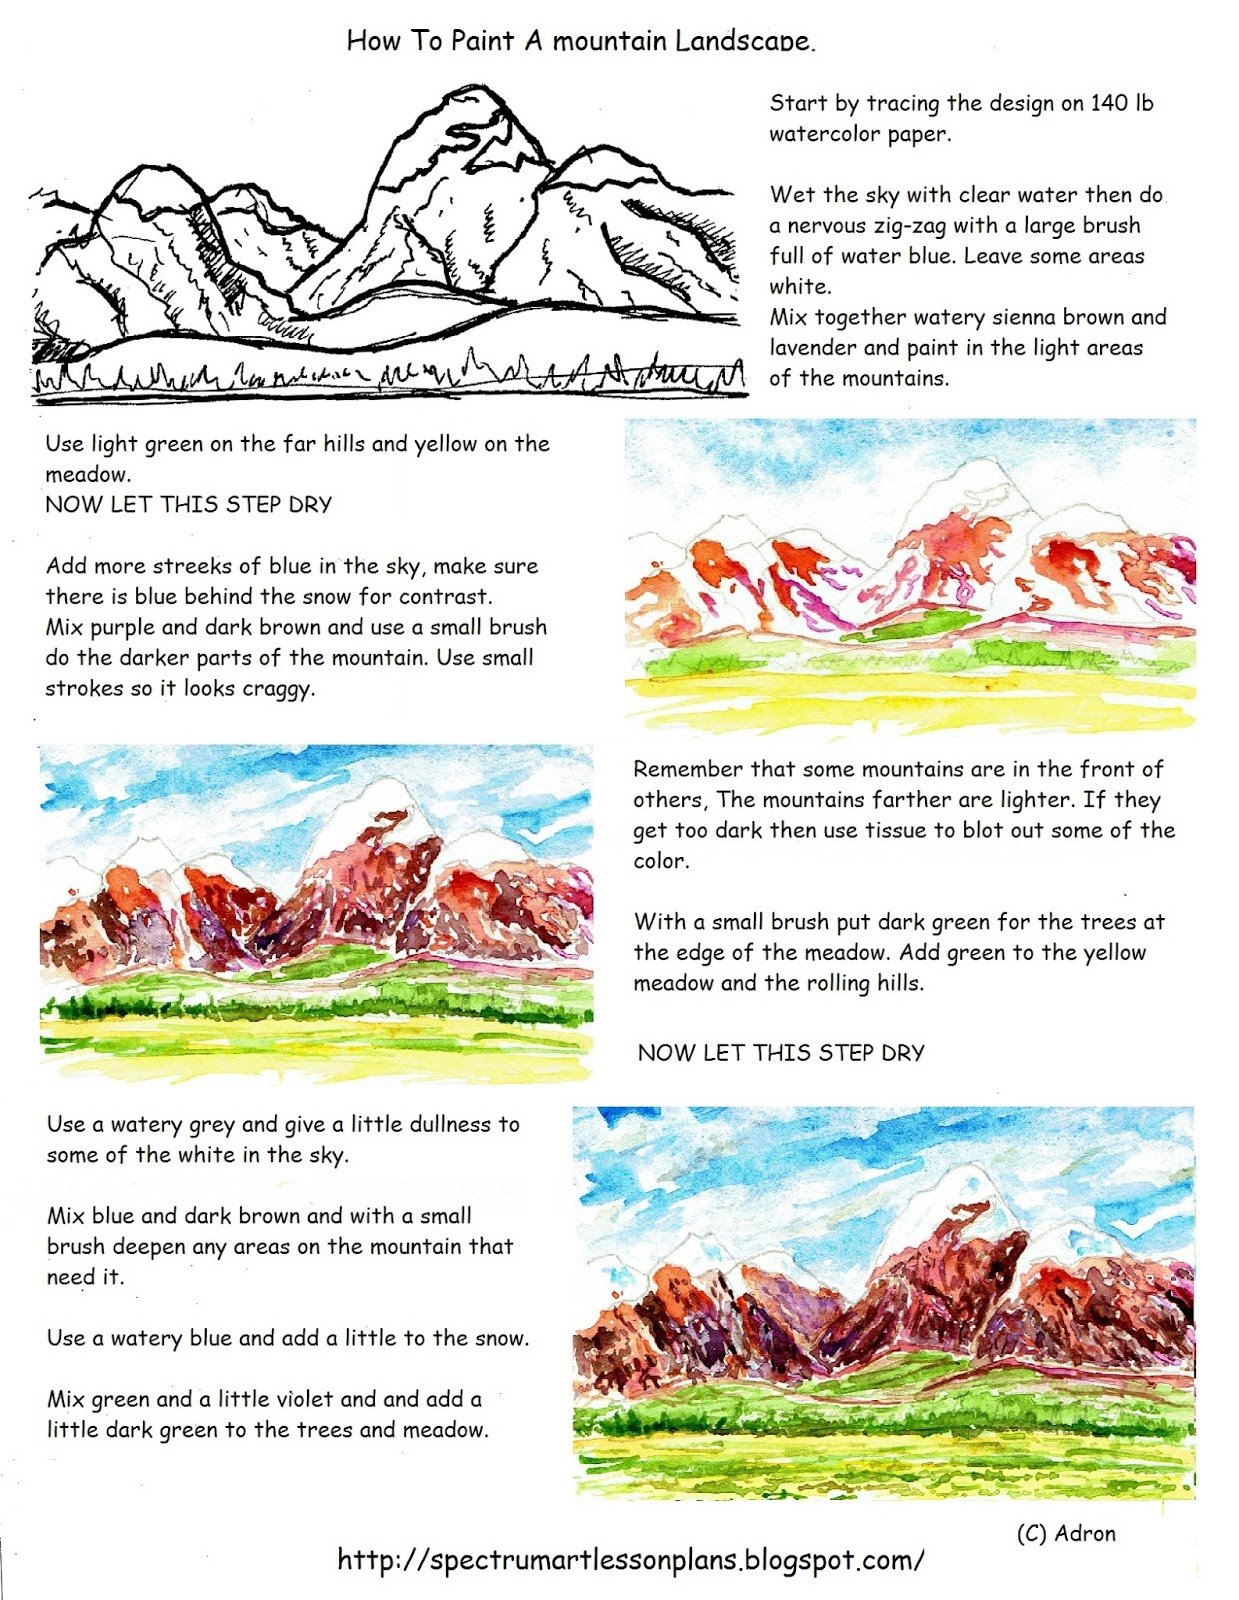 adron 39 s art lesson plans how to paint a mountain landscape worksheet. Black Bedroom Furniture Sets. Home Design Ideas